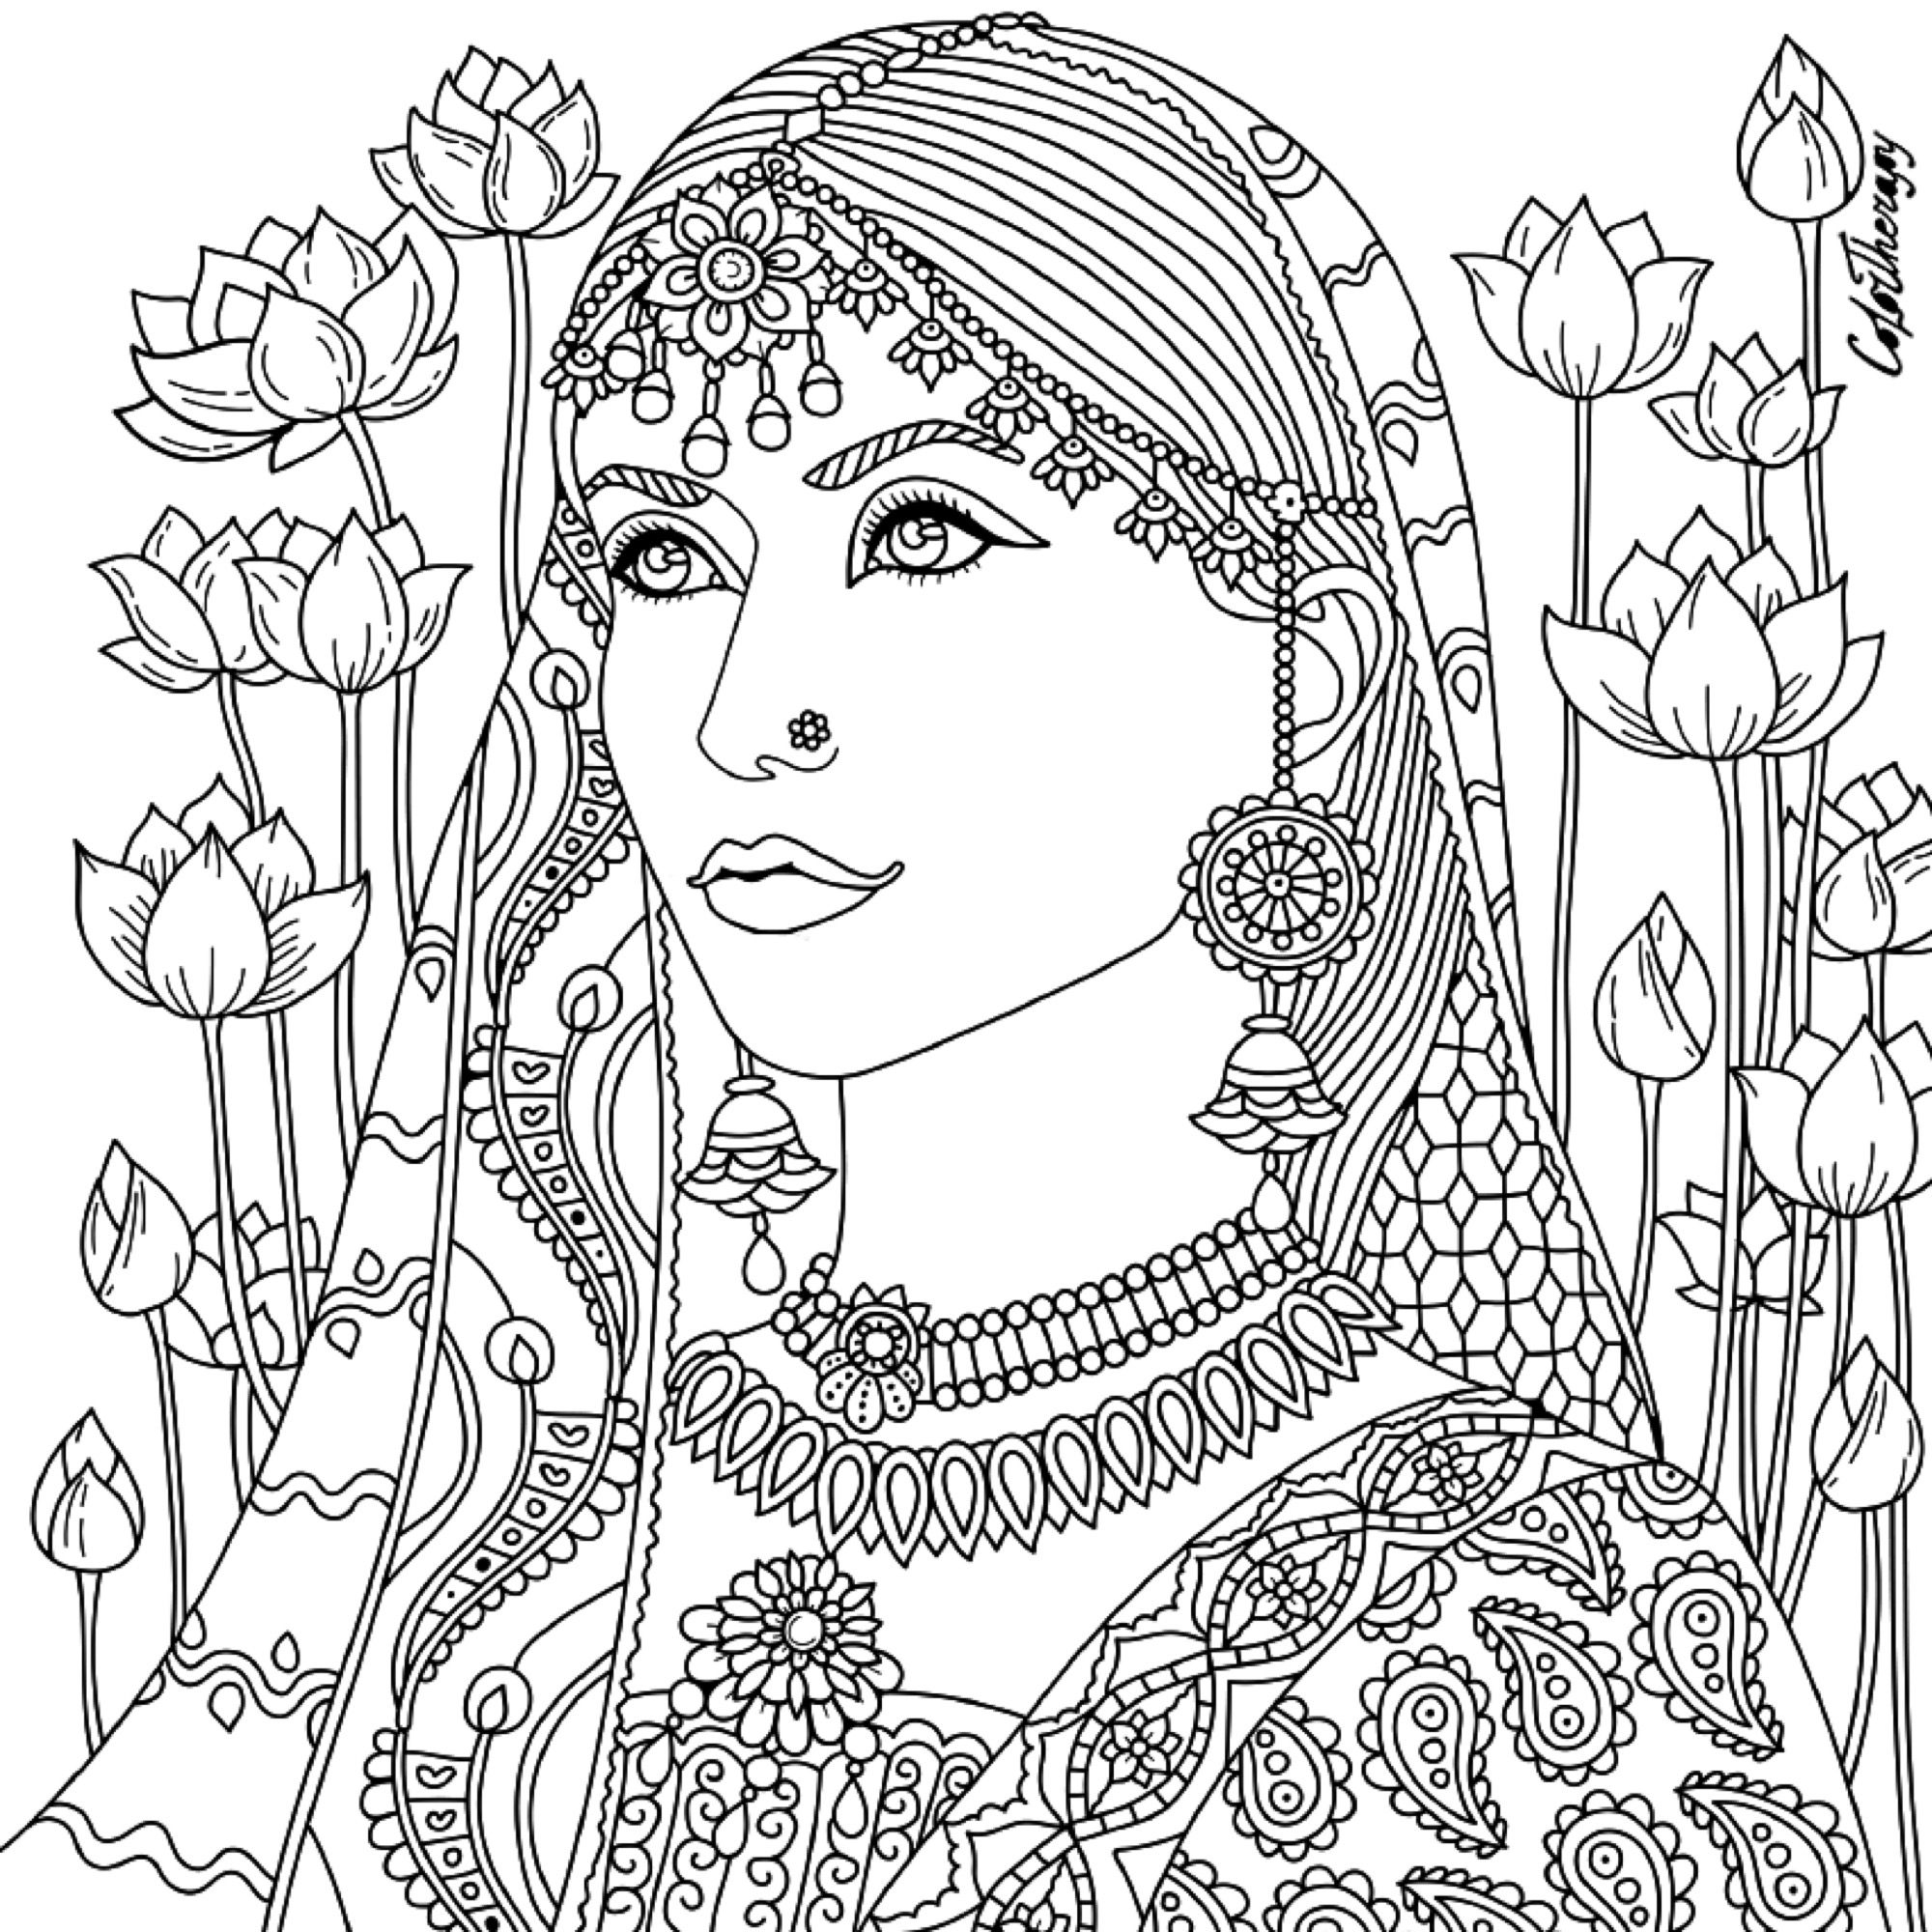 Therapeutic coloring pages for adults - Indian Beauty Coloring Page